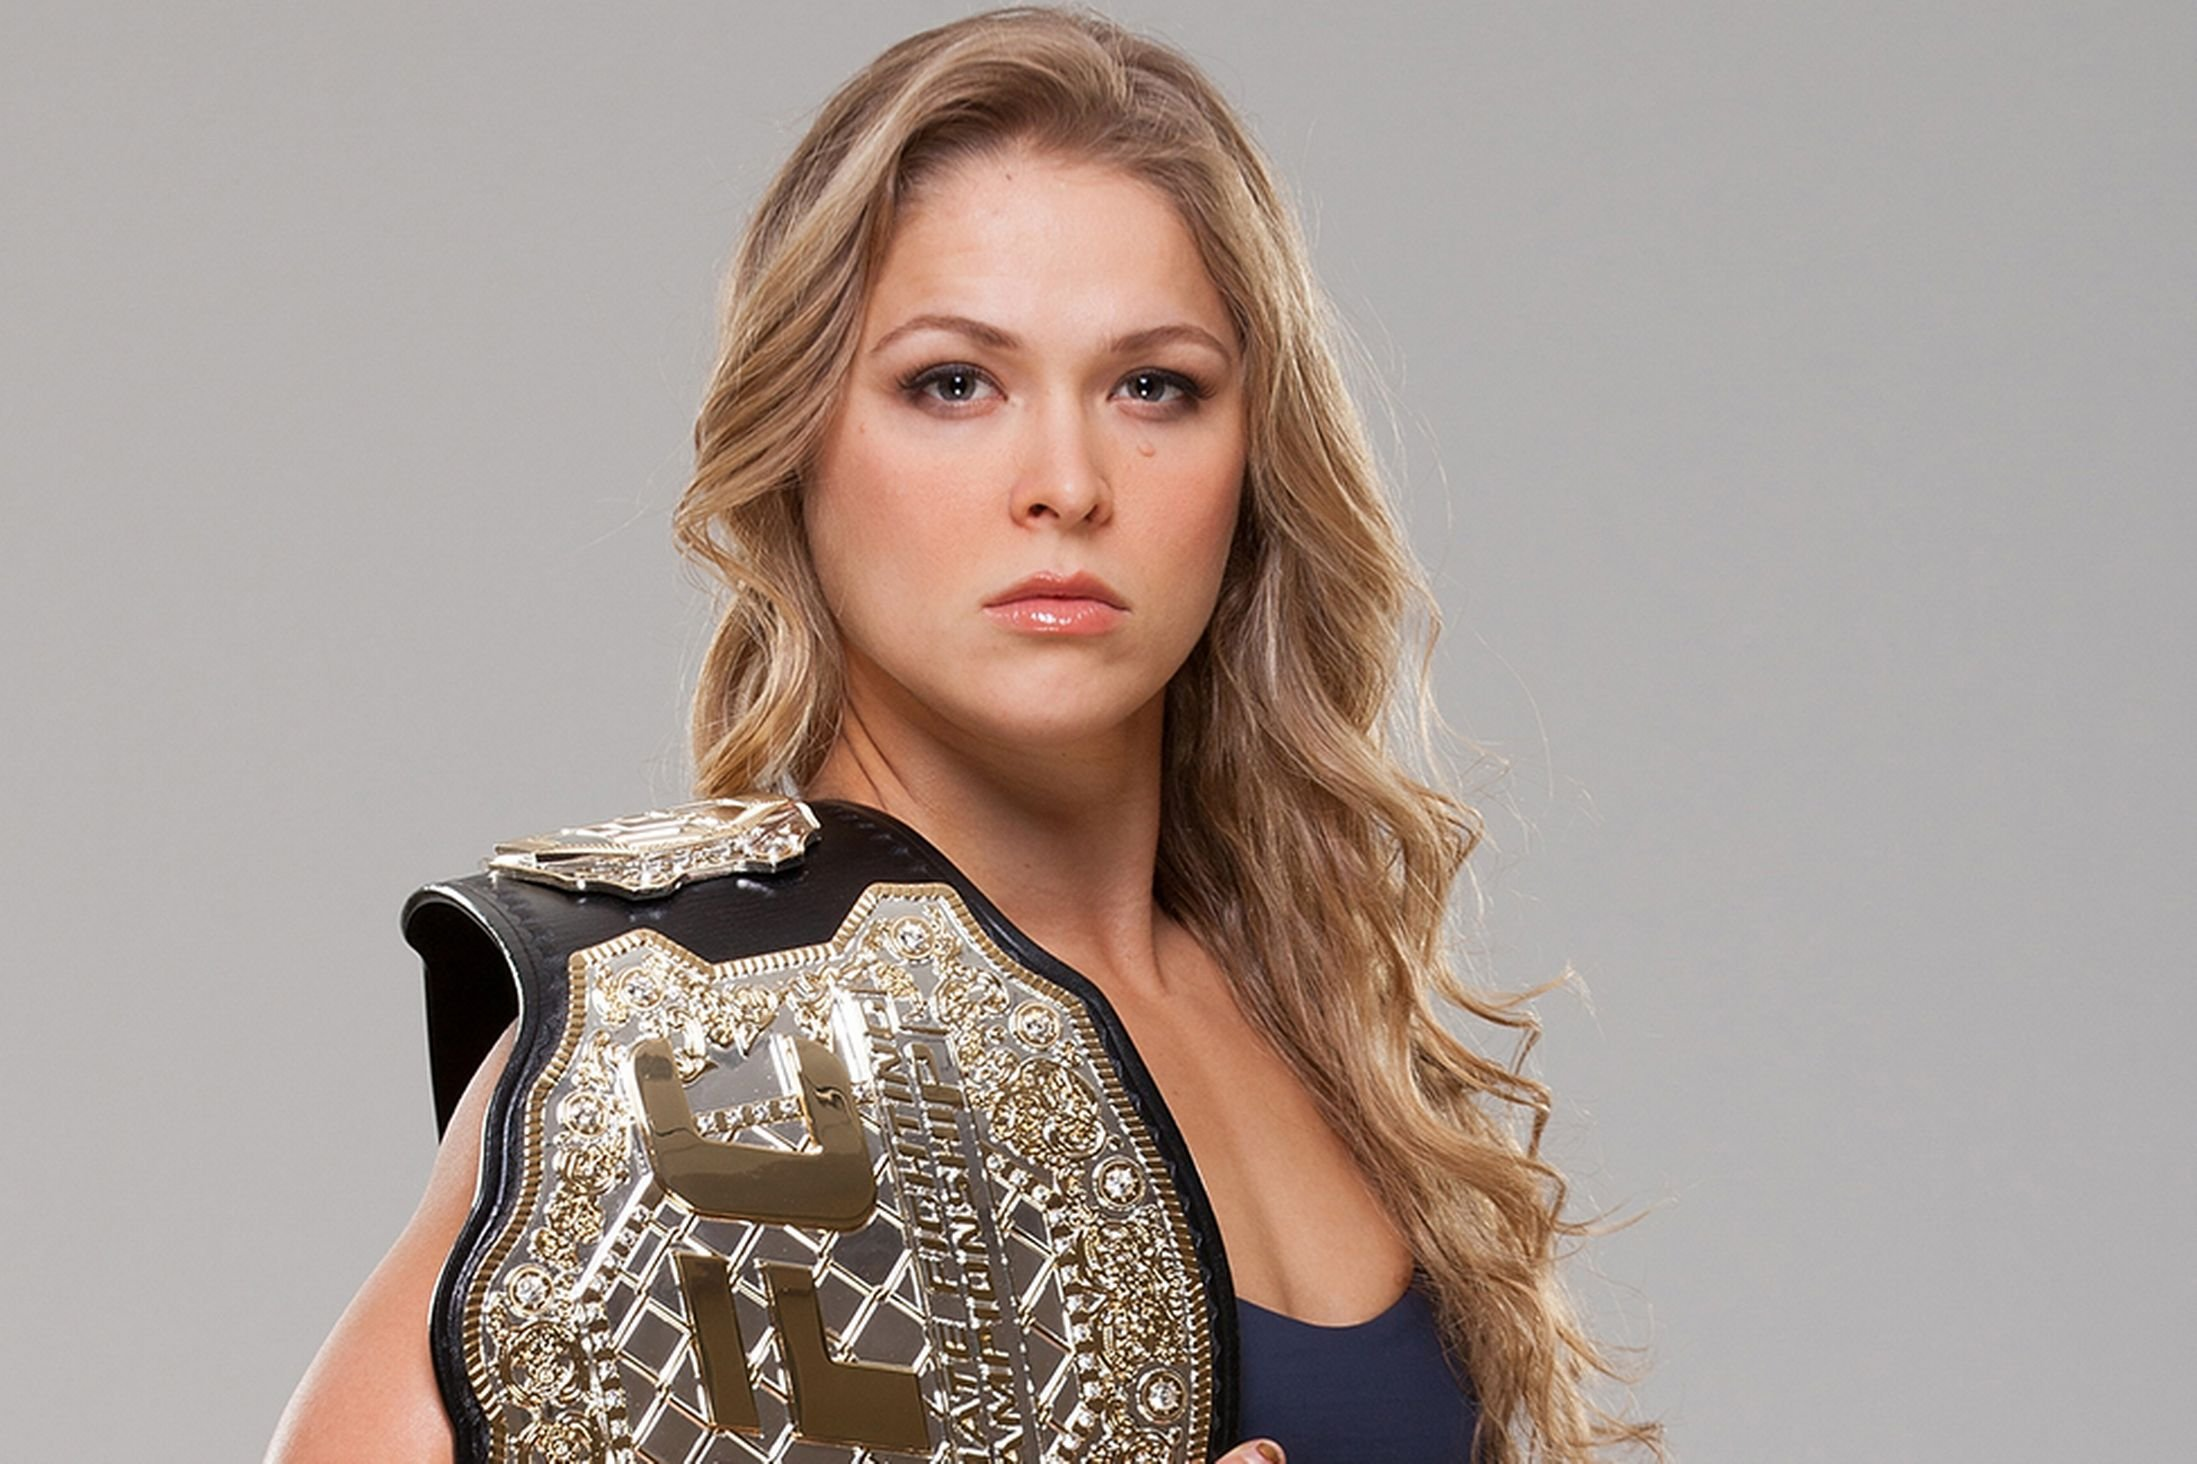 RONDA ROUSEY ufc mma mixed martial sexy babe blonde extreme 13 2197x1464